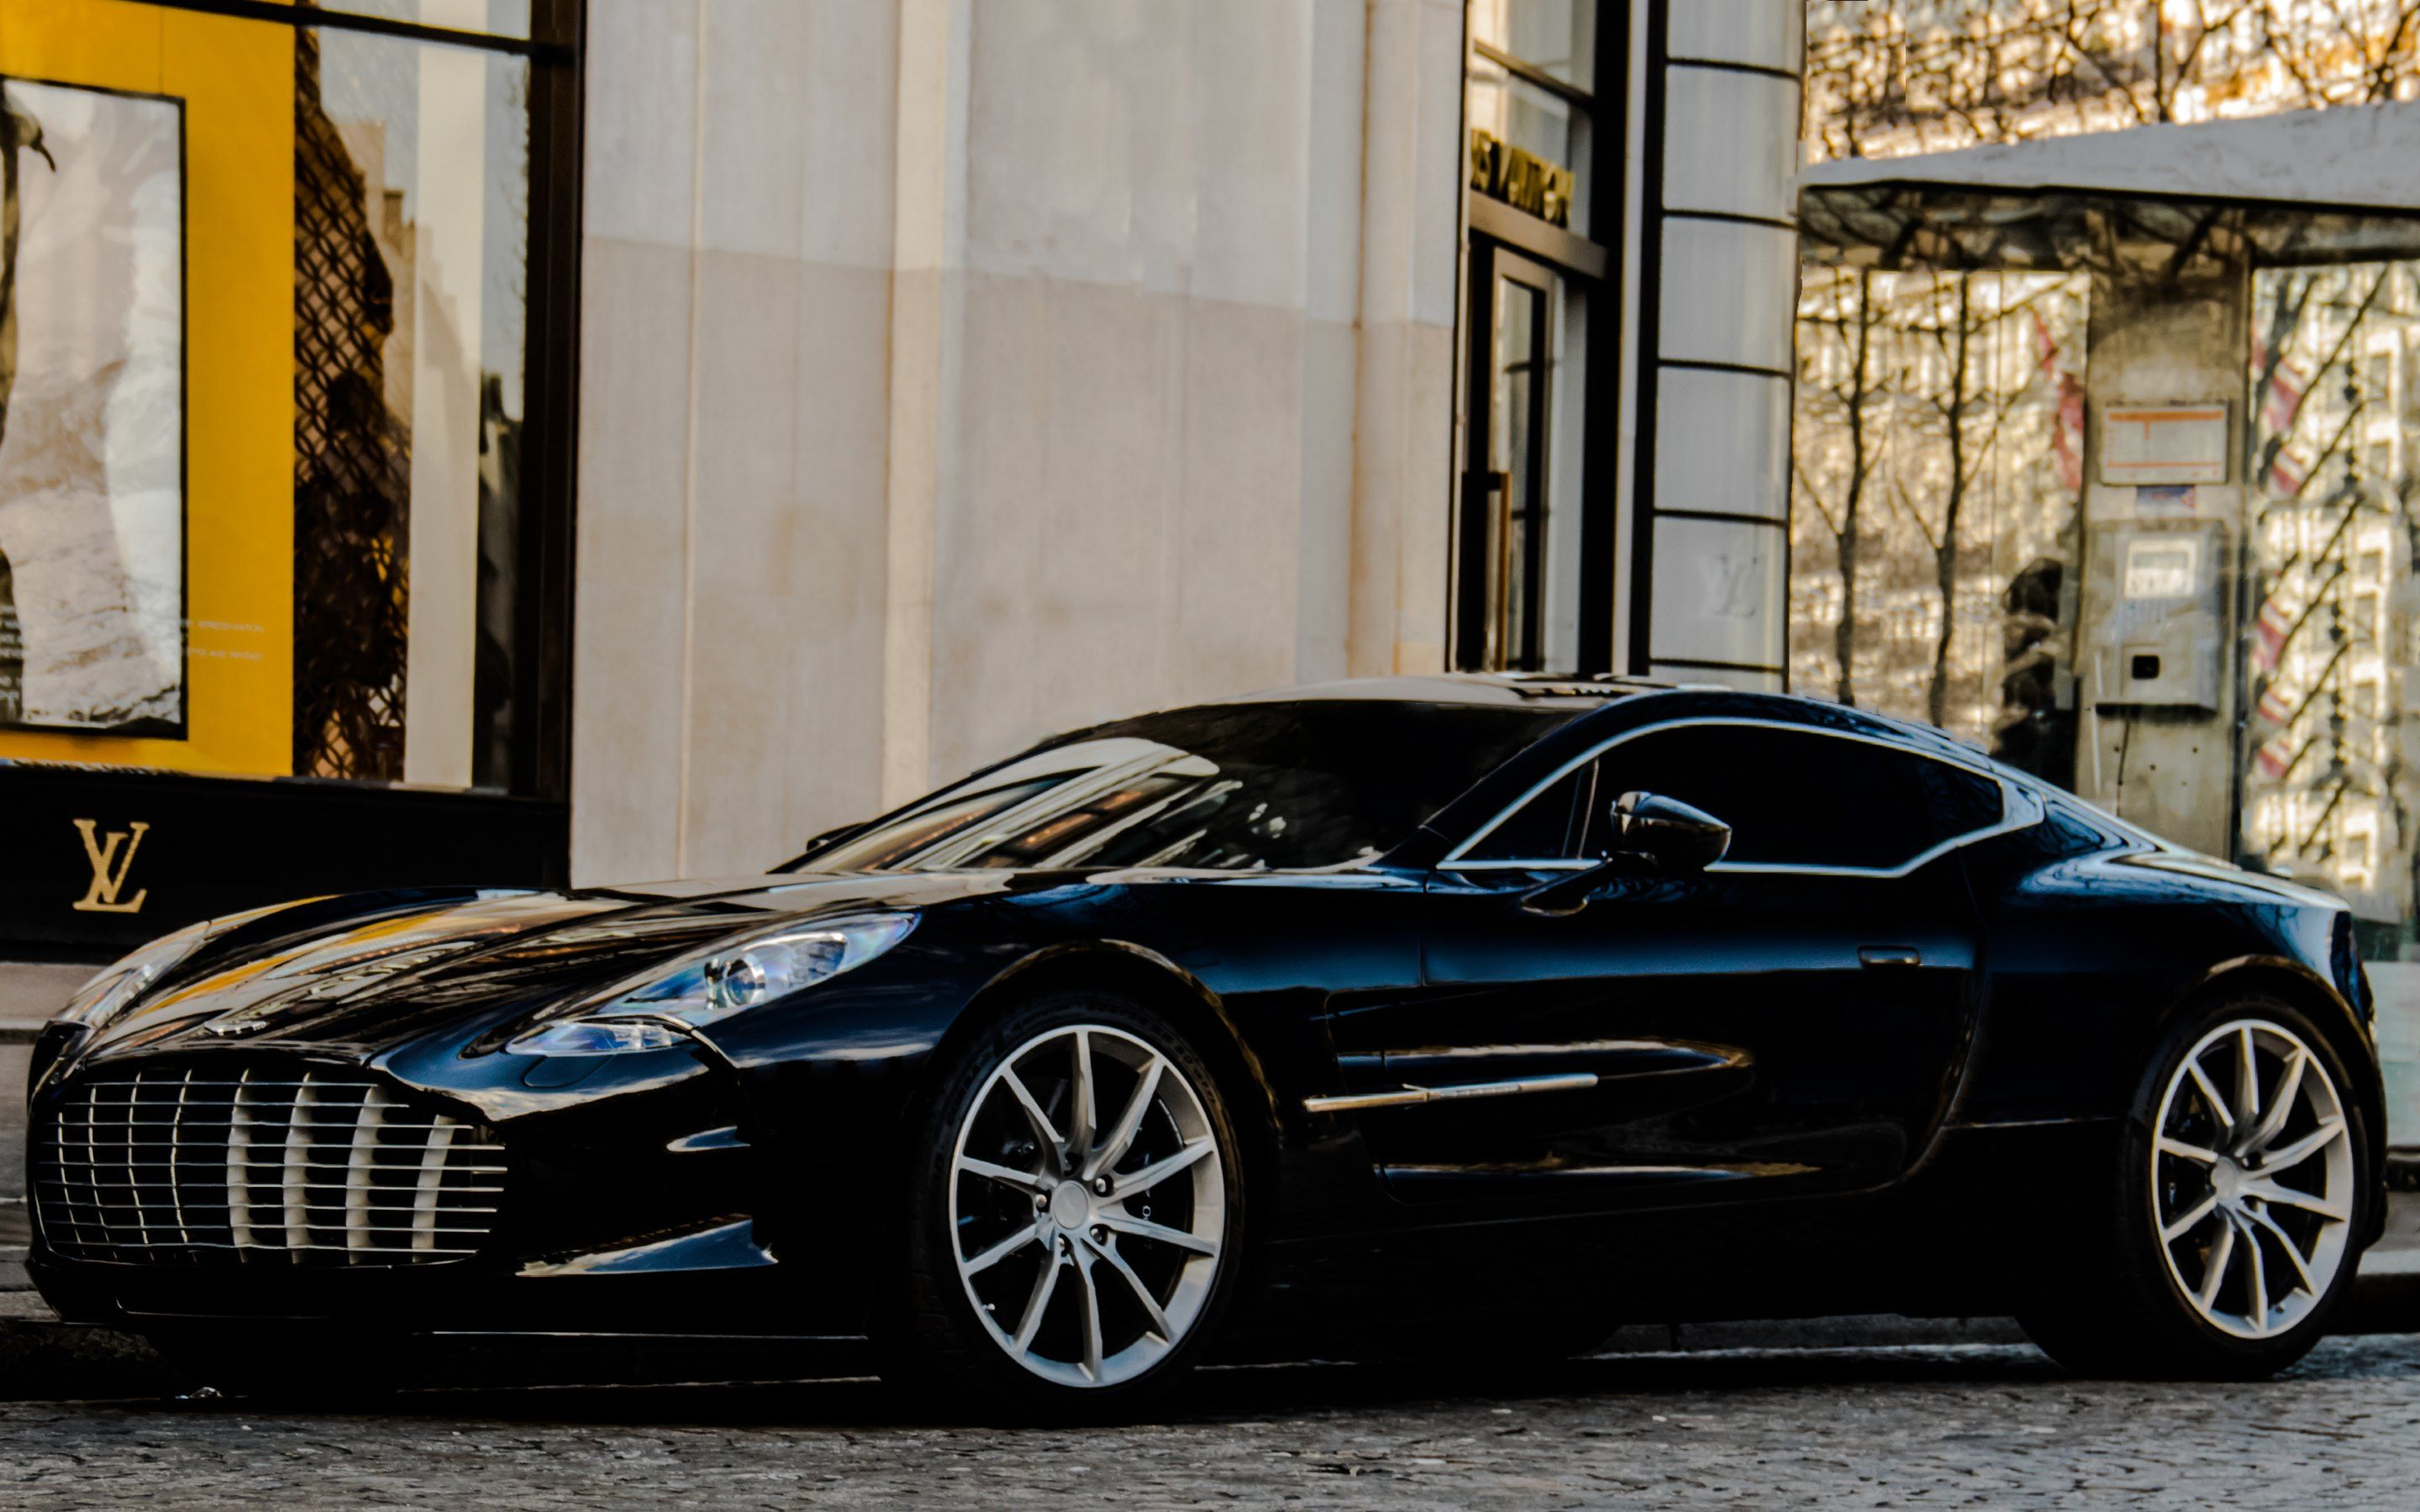 aston martin hd wallpapers : get free top quality aston martin hd